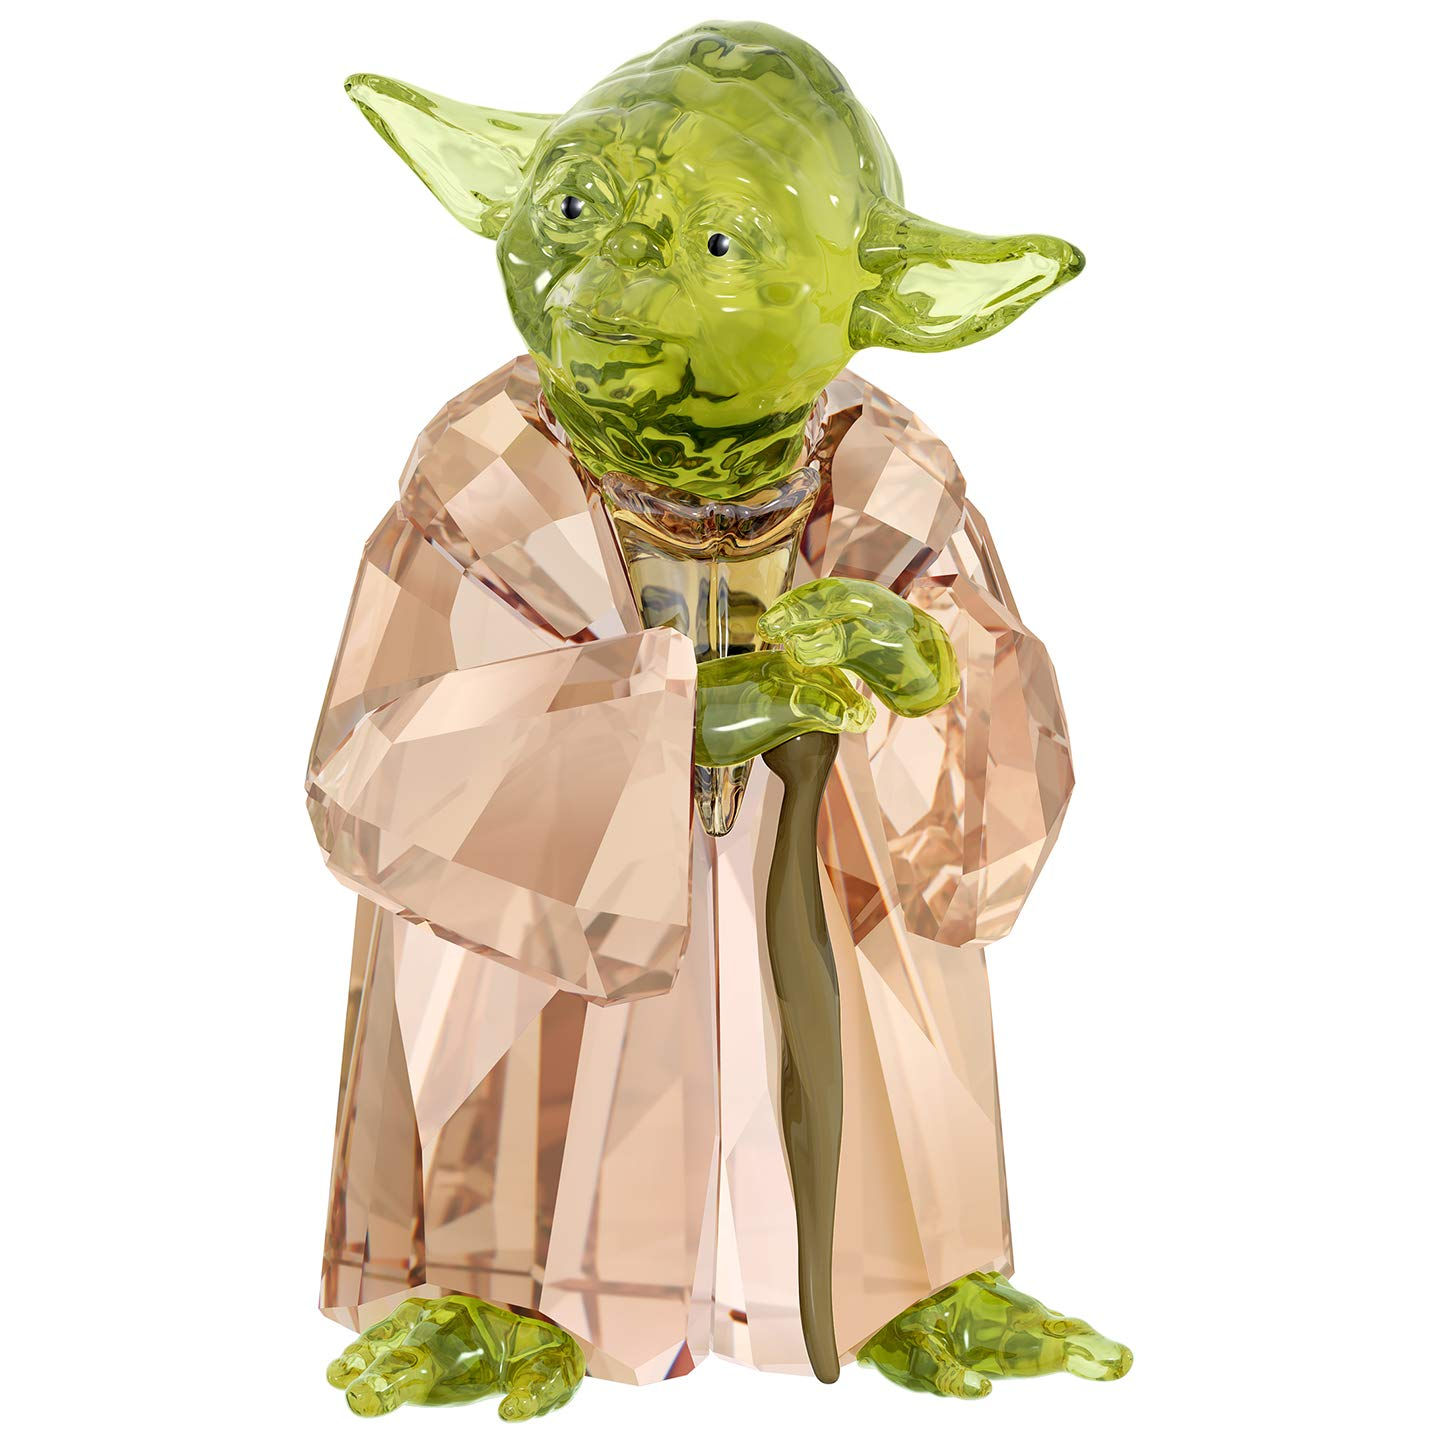 Star Wars Yoda Gifts For Fans